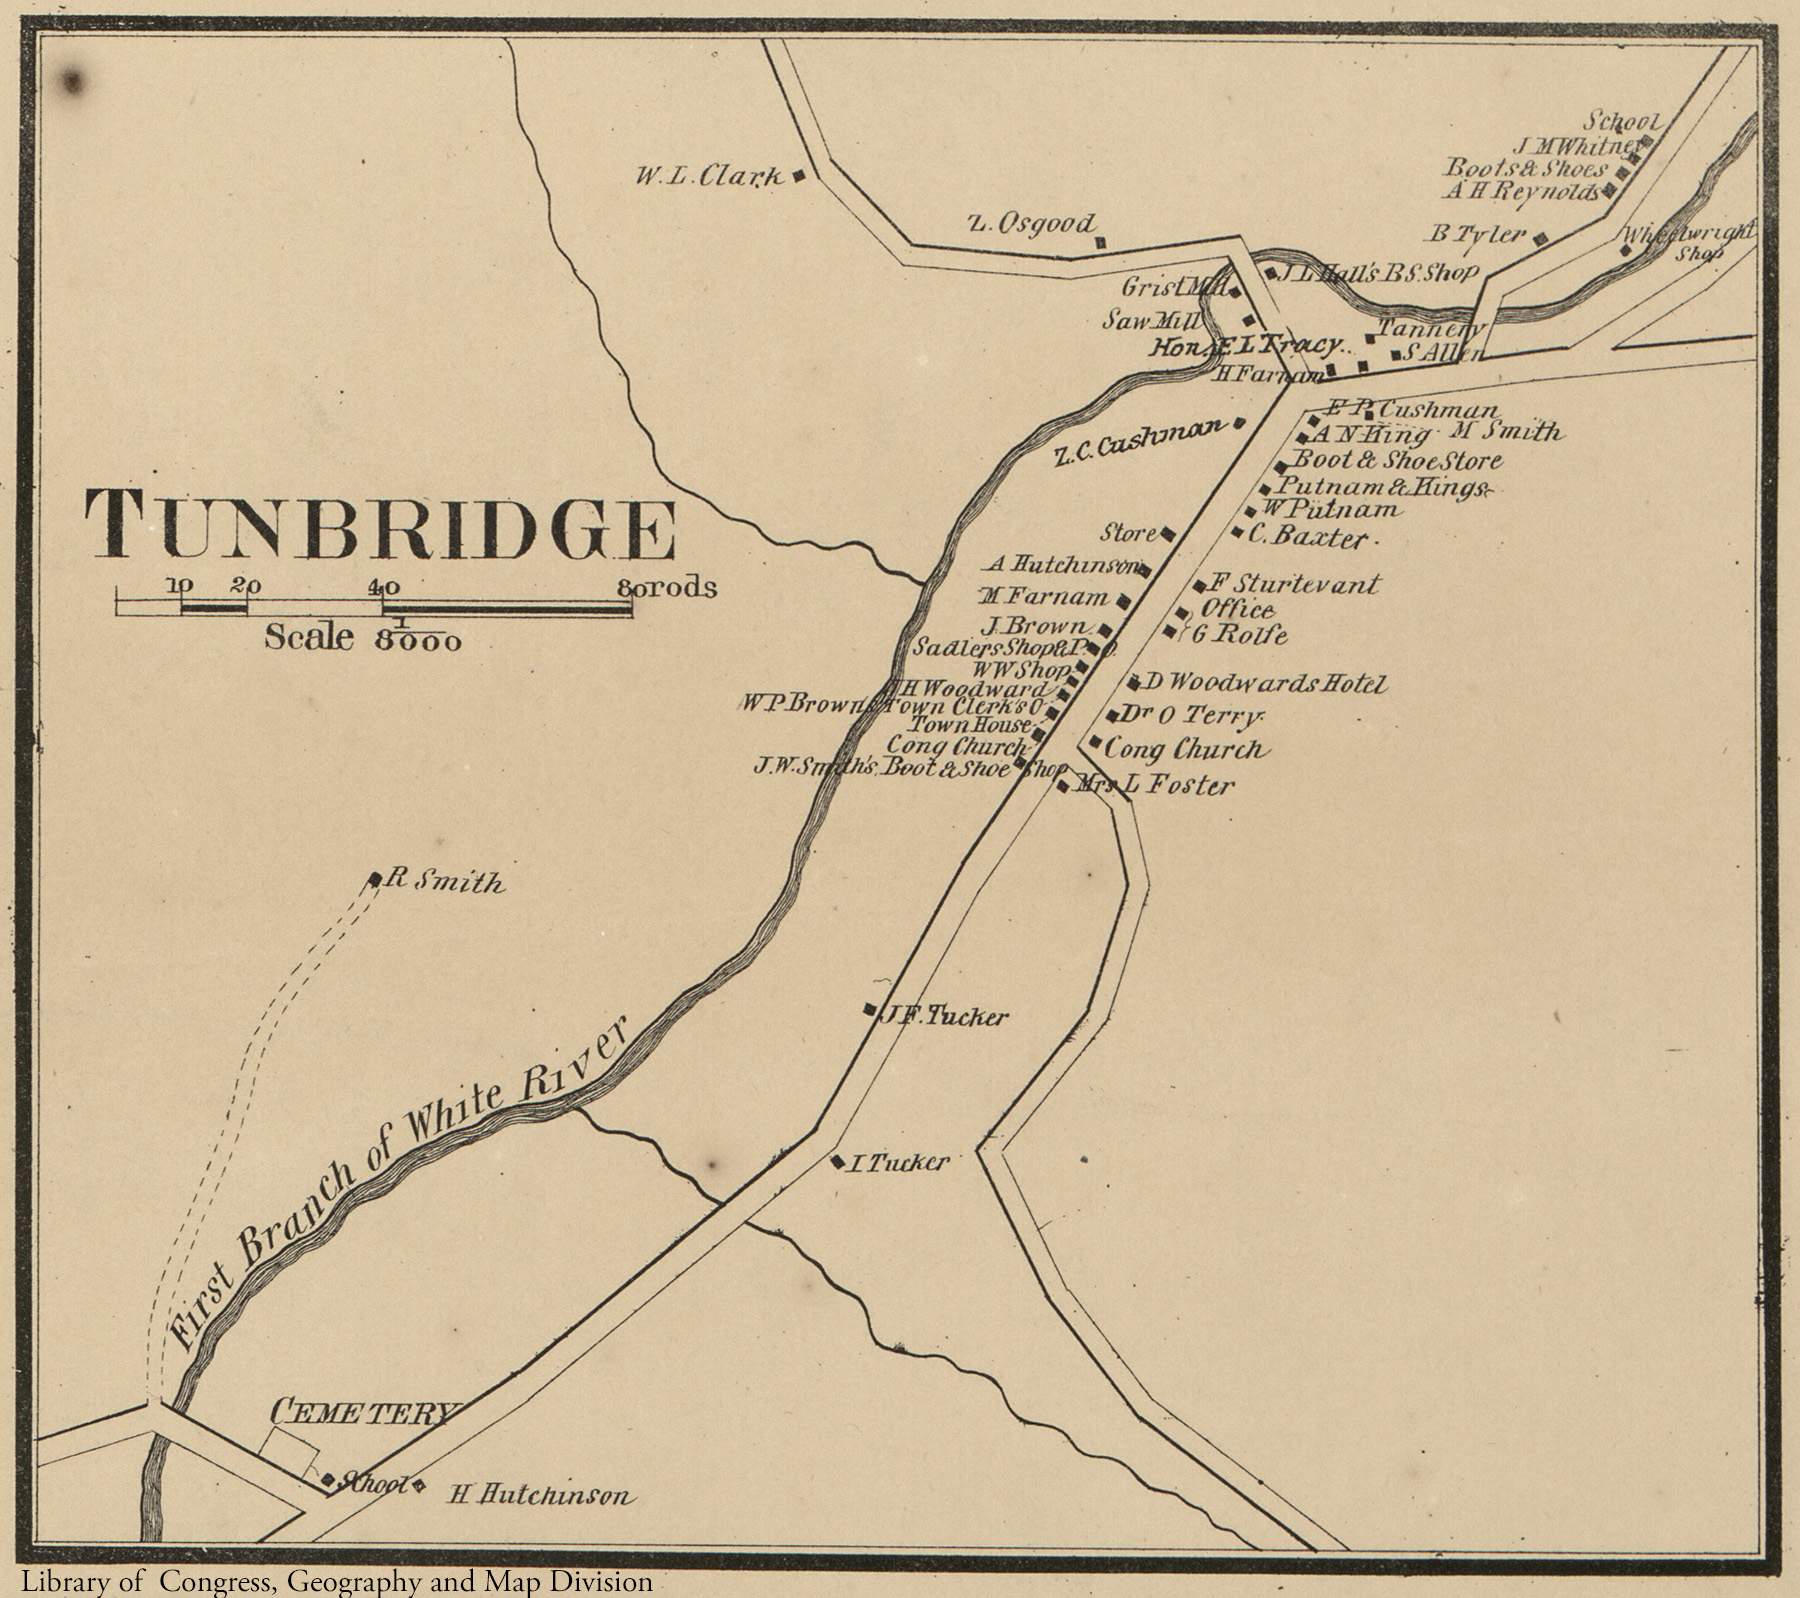 Detail Map of Tunbridge Village on 1858 Orange County Map from Library of Congress